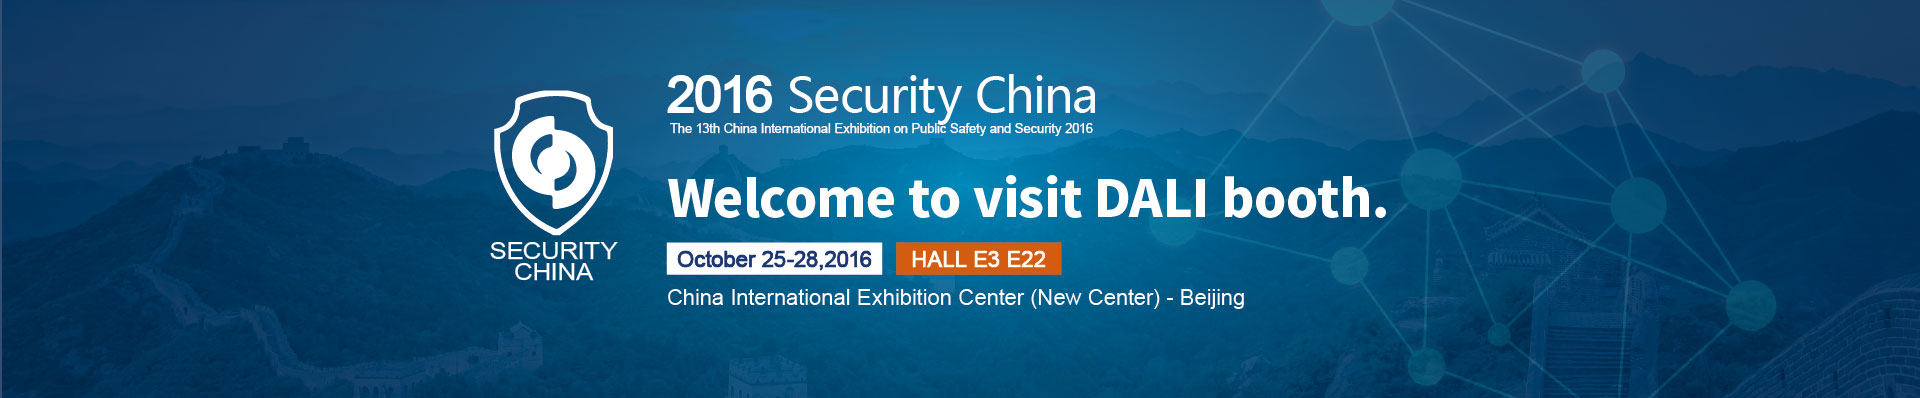 2016securitychina